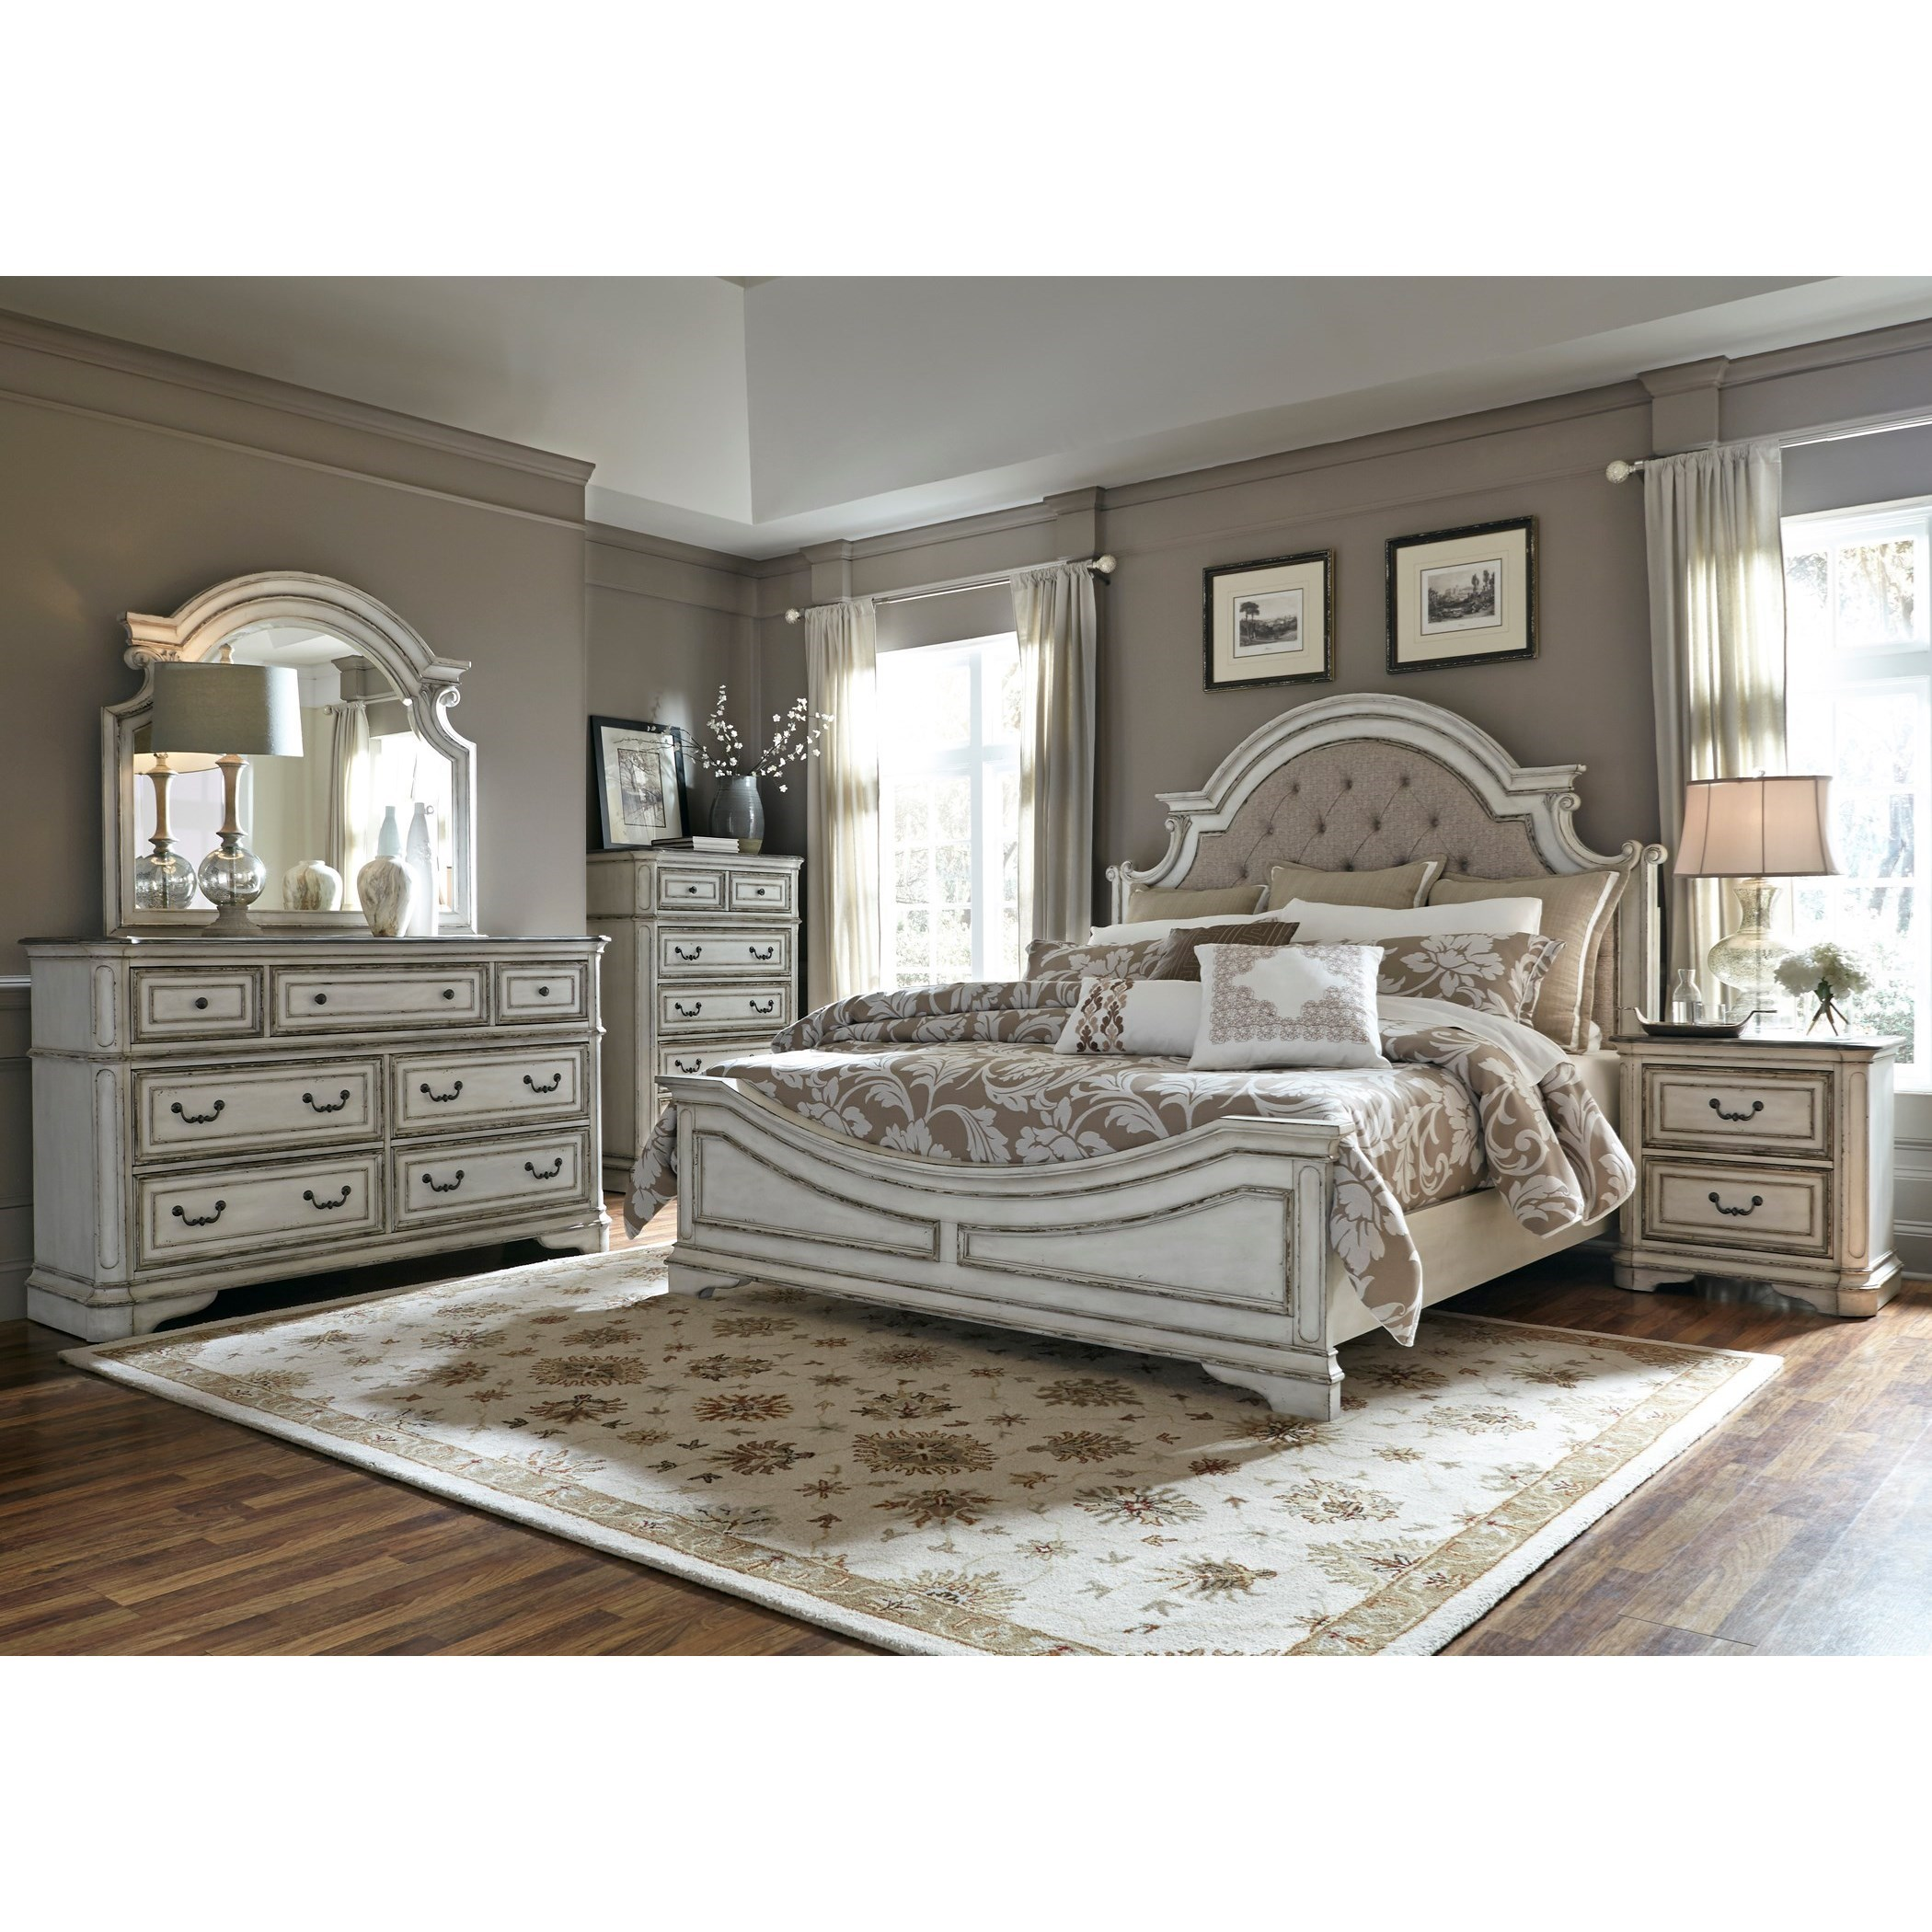 Magnolia Manor Queen Bedroom Group by Liberty Furniture at Wilson's Furniture